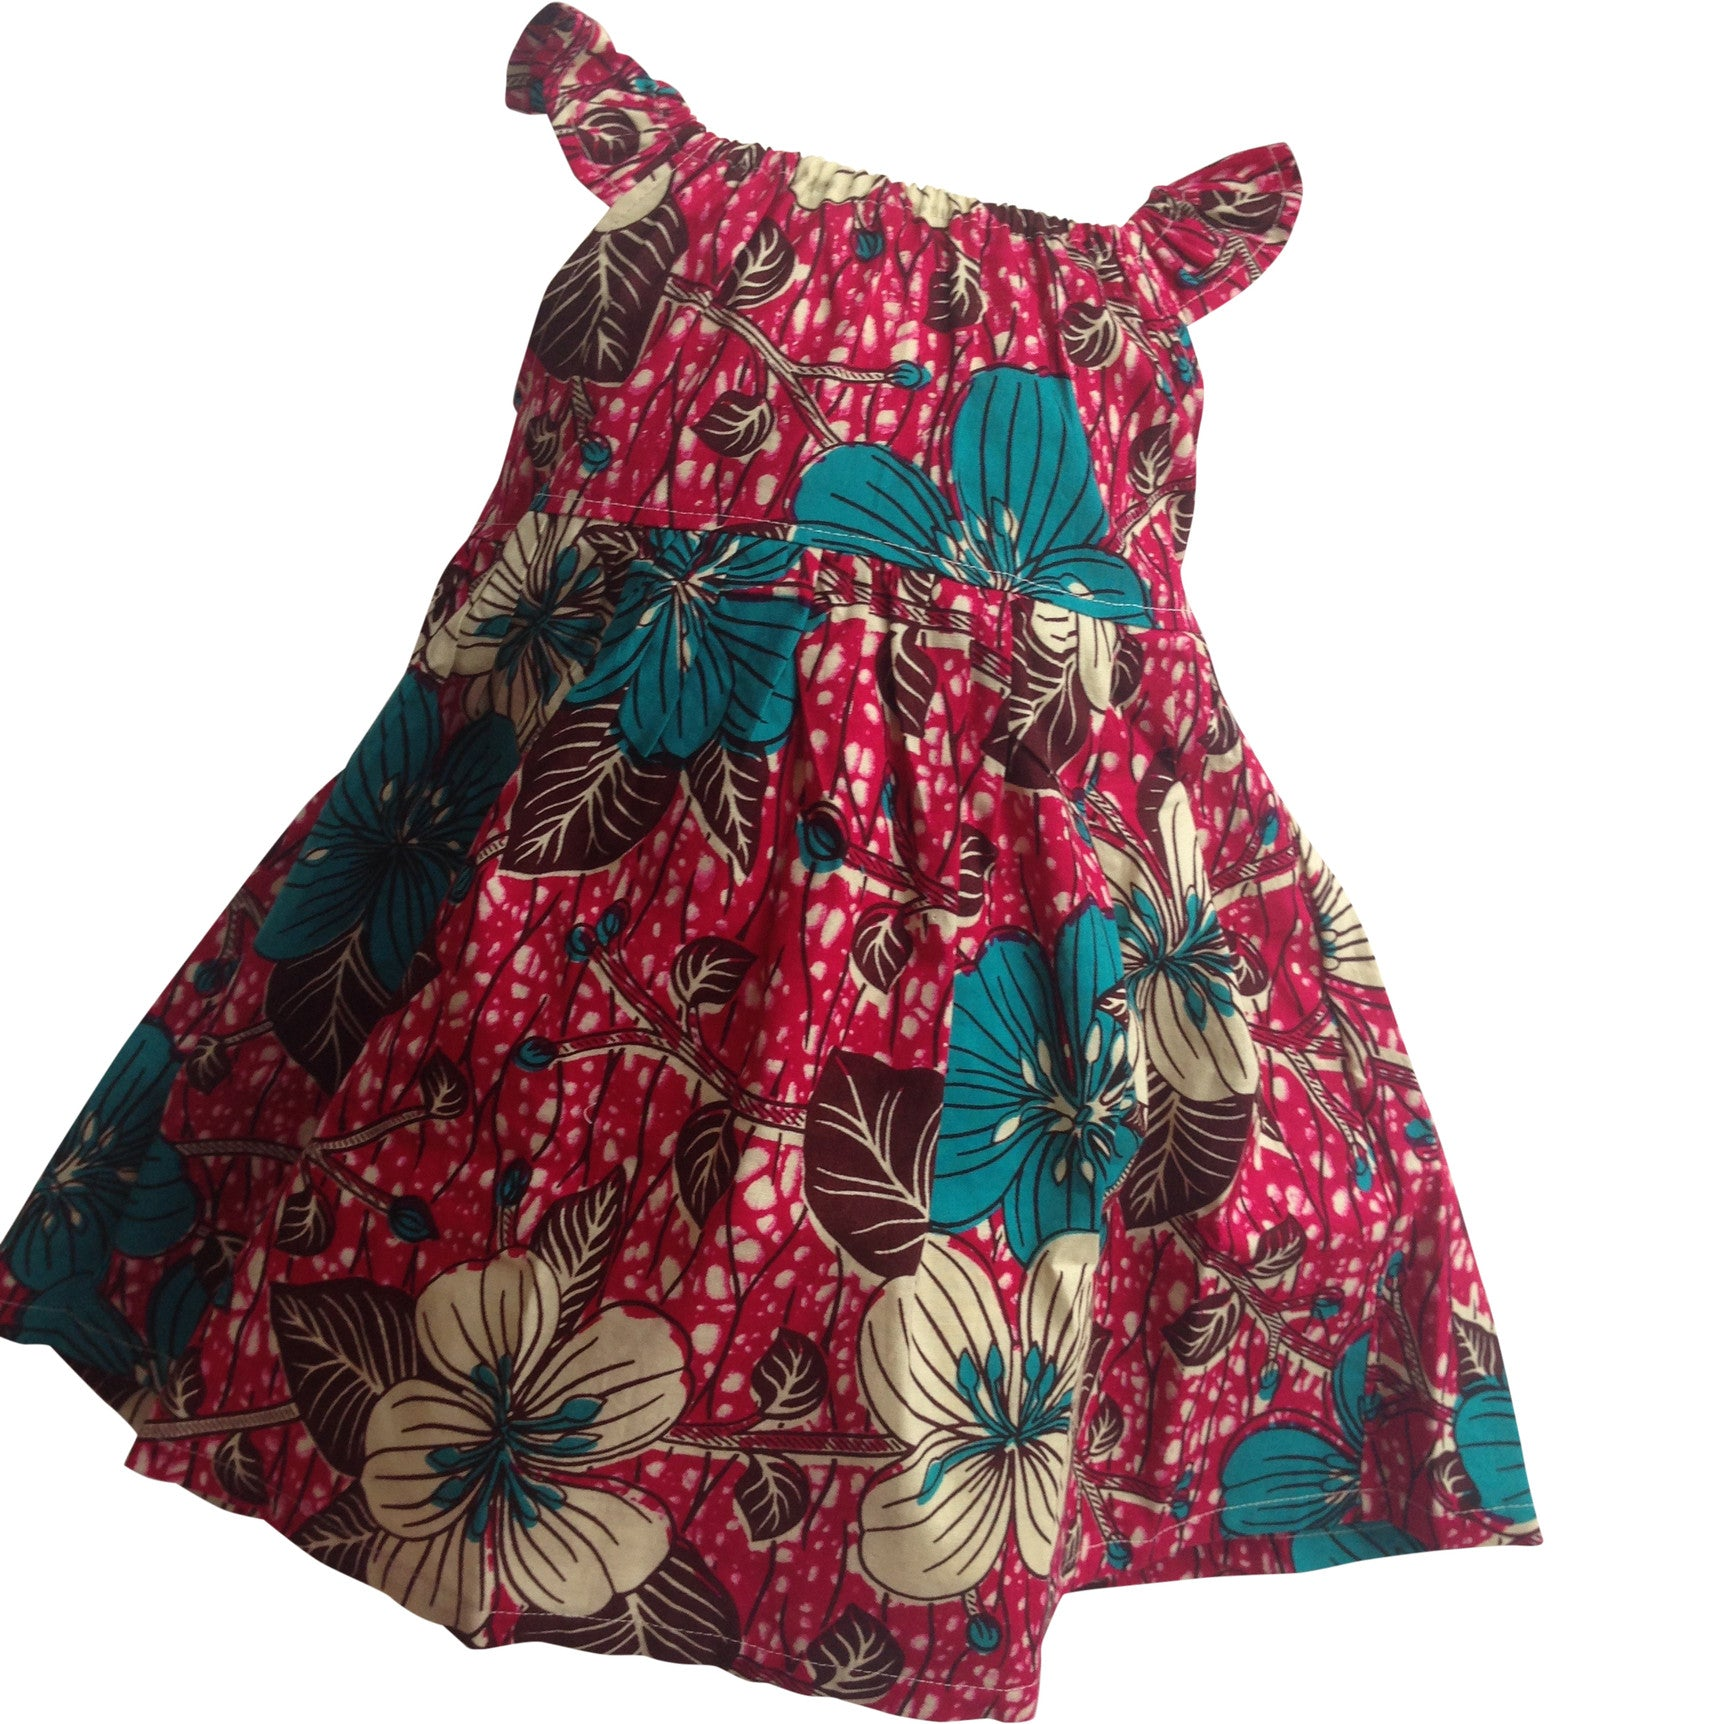 AFRICAN PRINT GIRLS' DRESSES